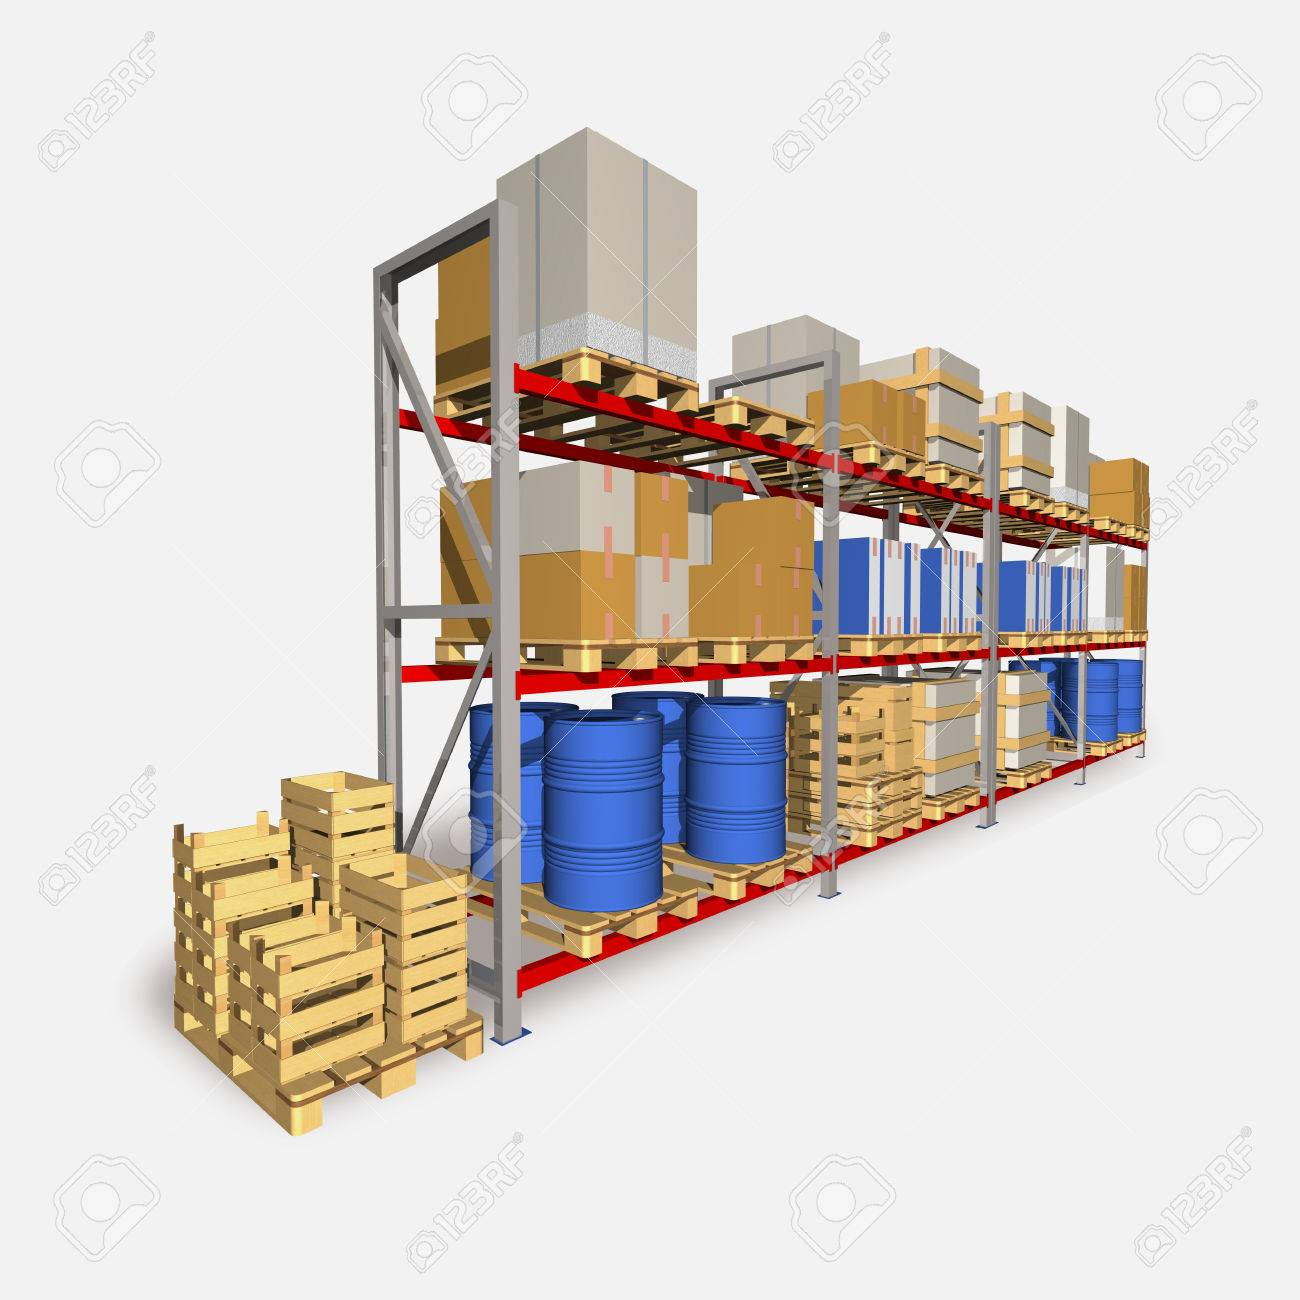 Storage racks and pallets with various products are shown at picture. Stock Photo - 34878289